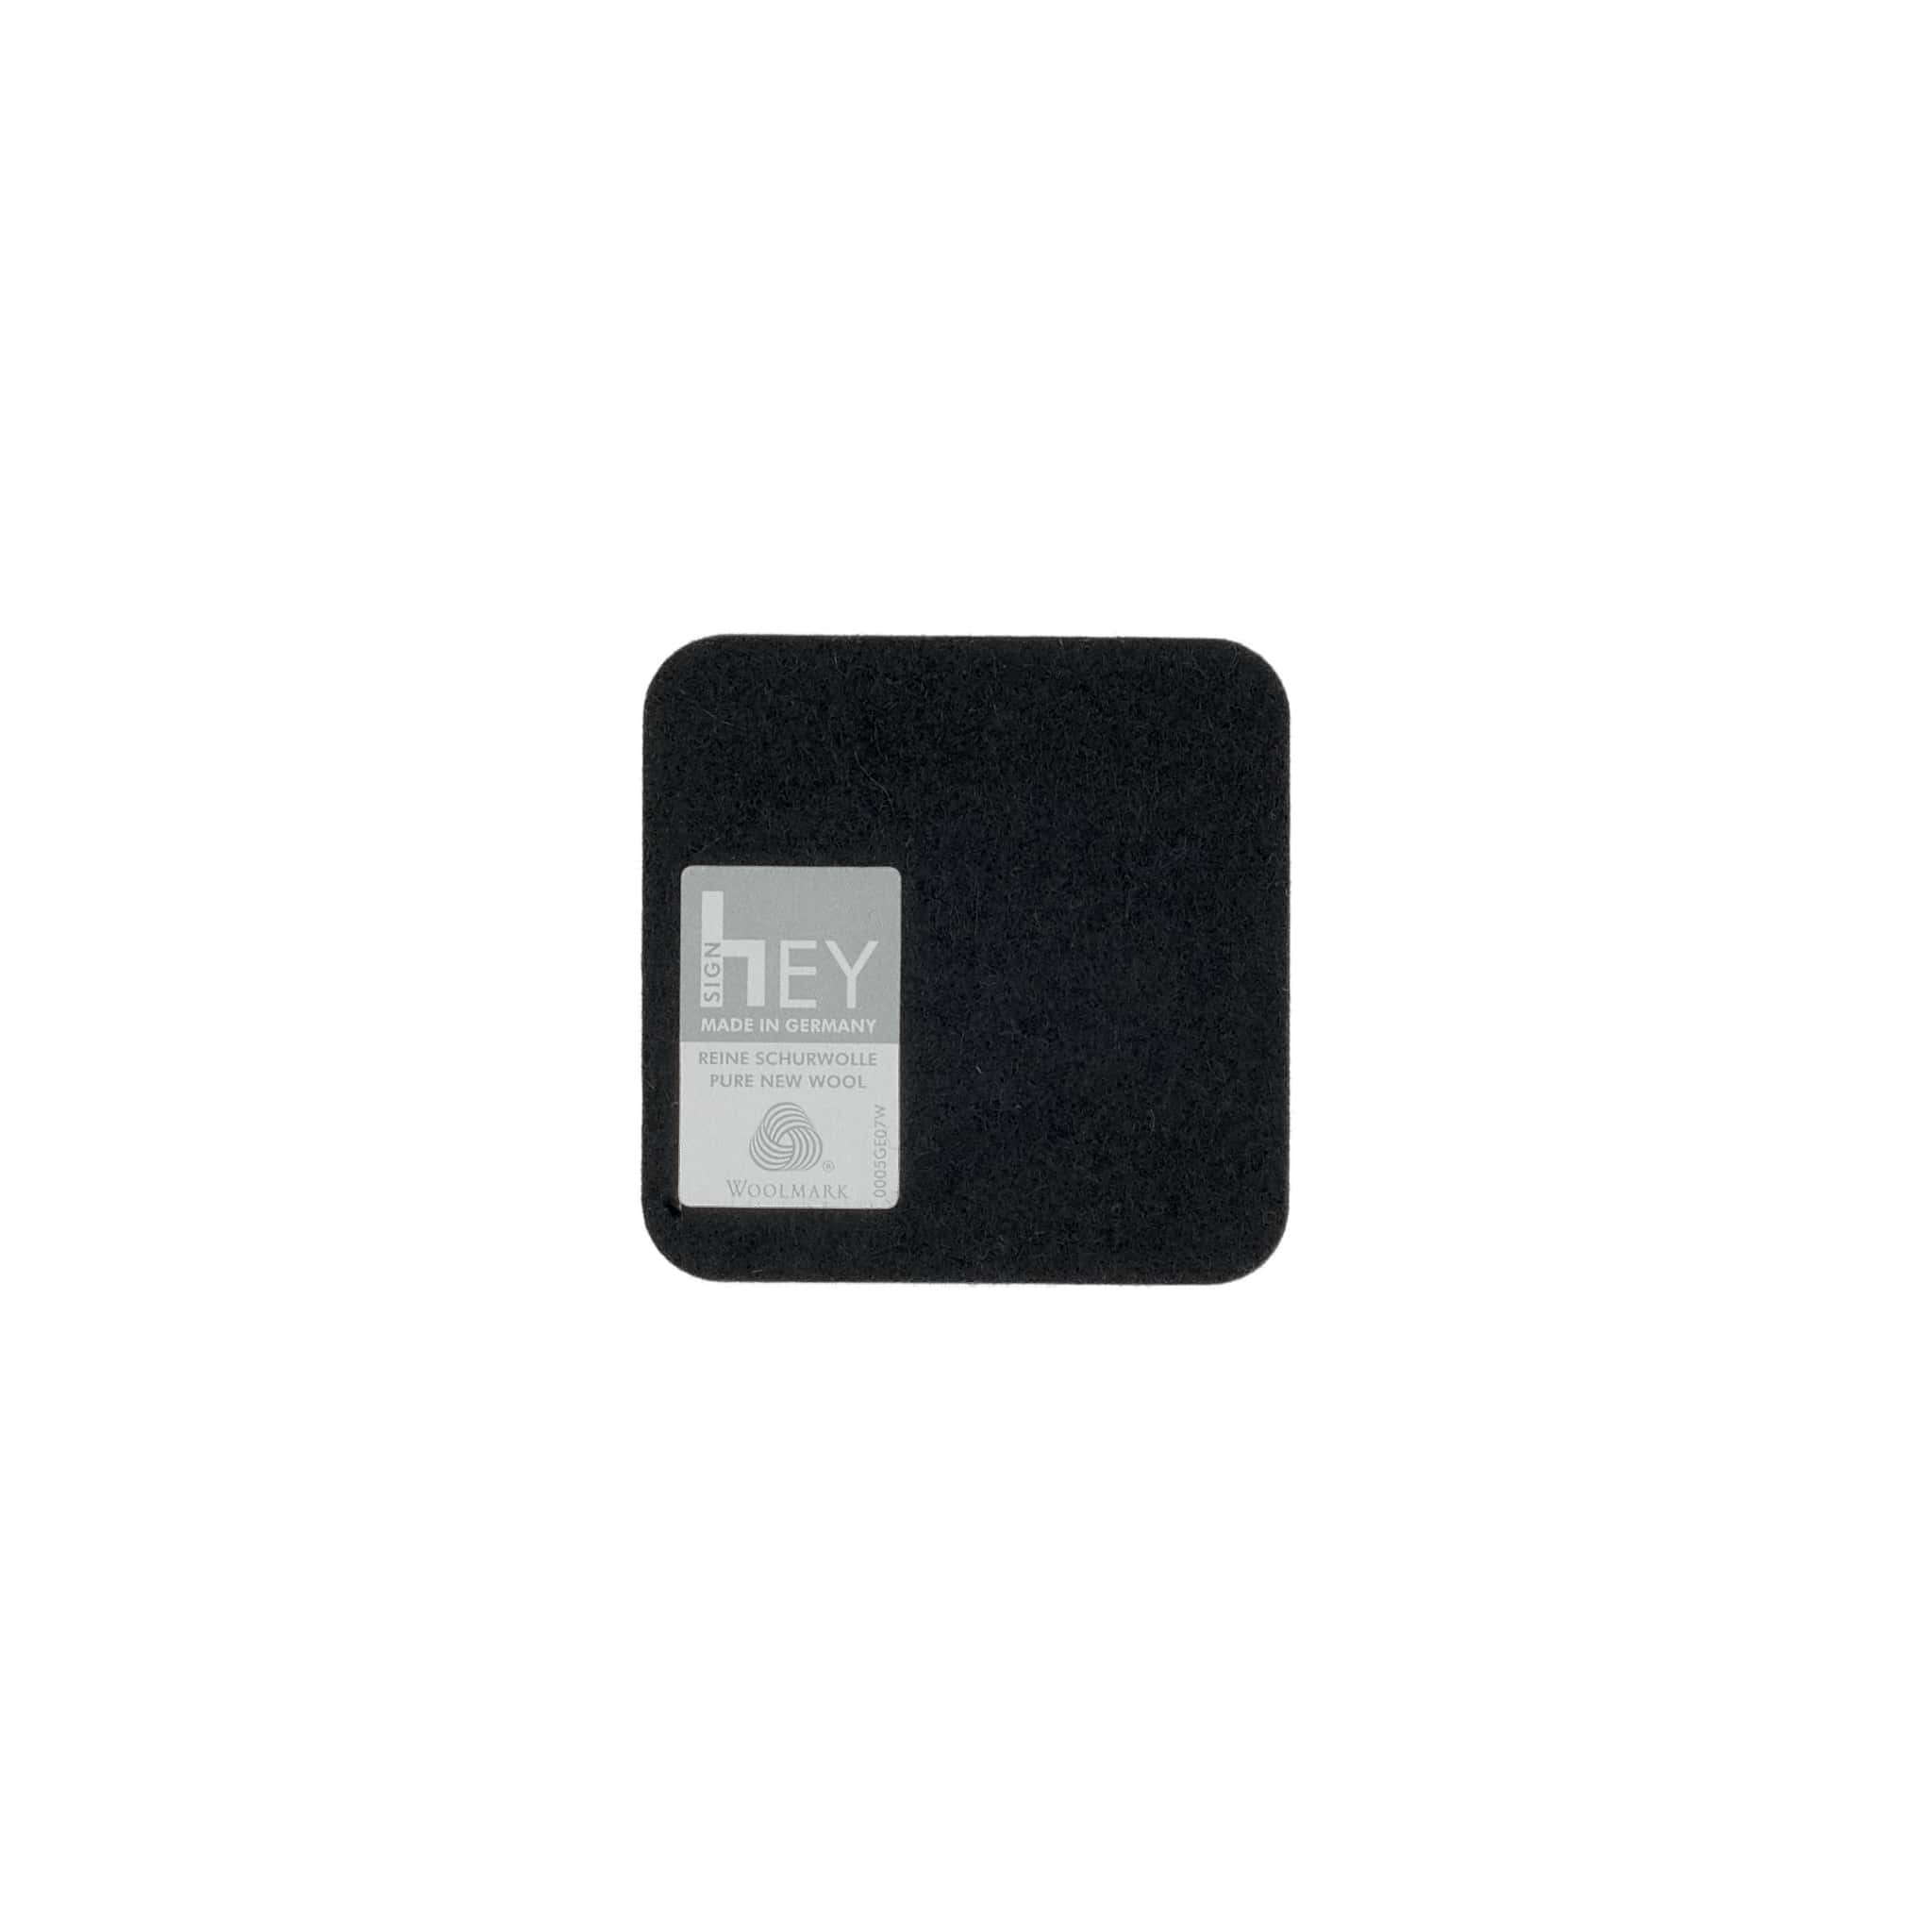 Square Felt Coaster in Black by Hey-Sign 300160902 looking at Back